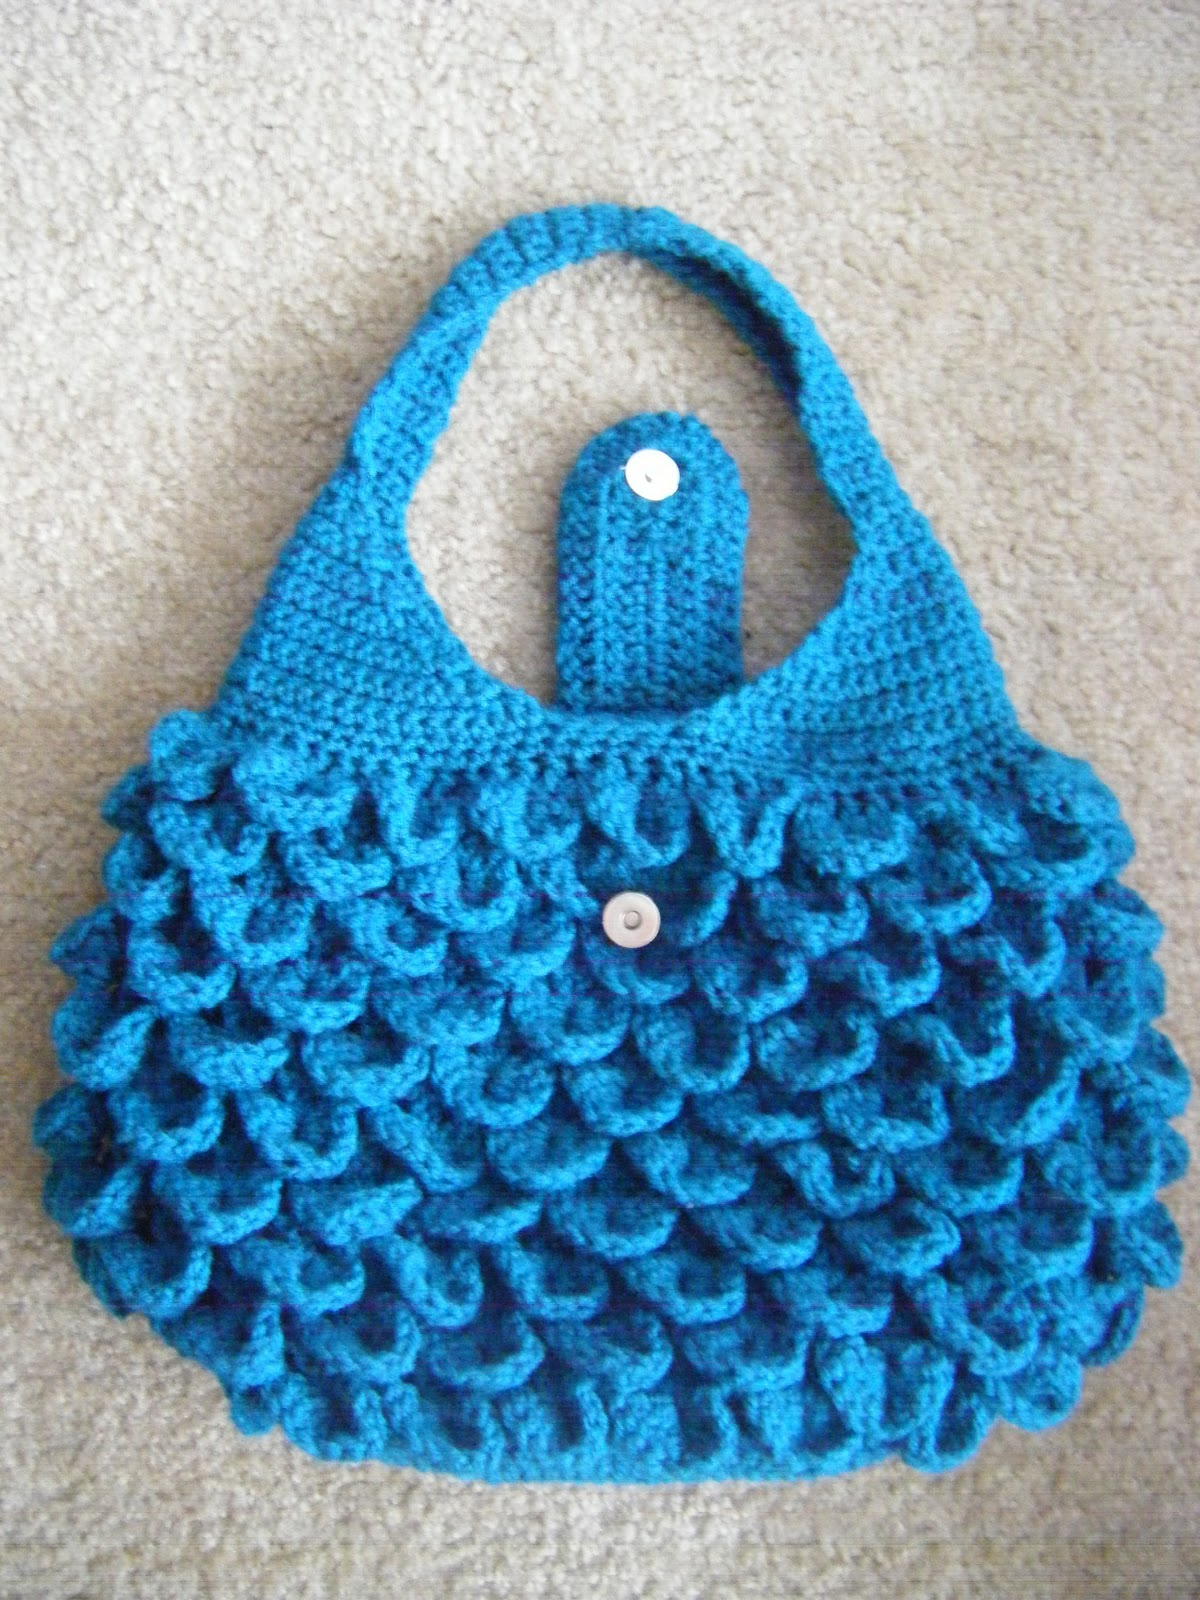 Crocodile stitch crochet bag free patterns dancox for best patterns crocodile crochet bag pattern bankloansurffo Image collections